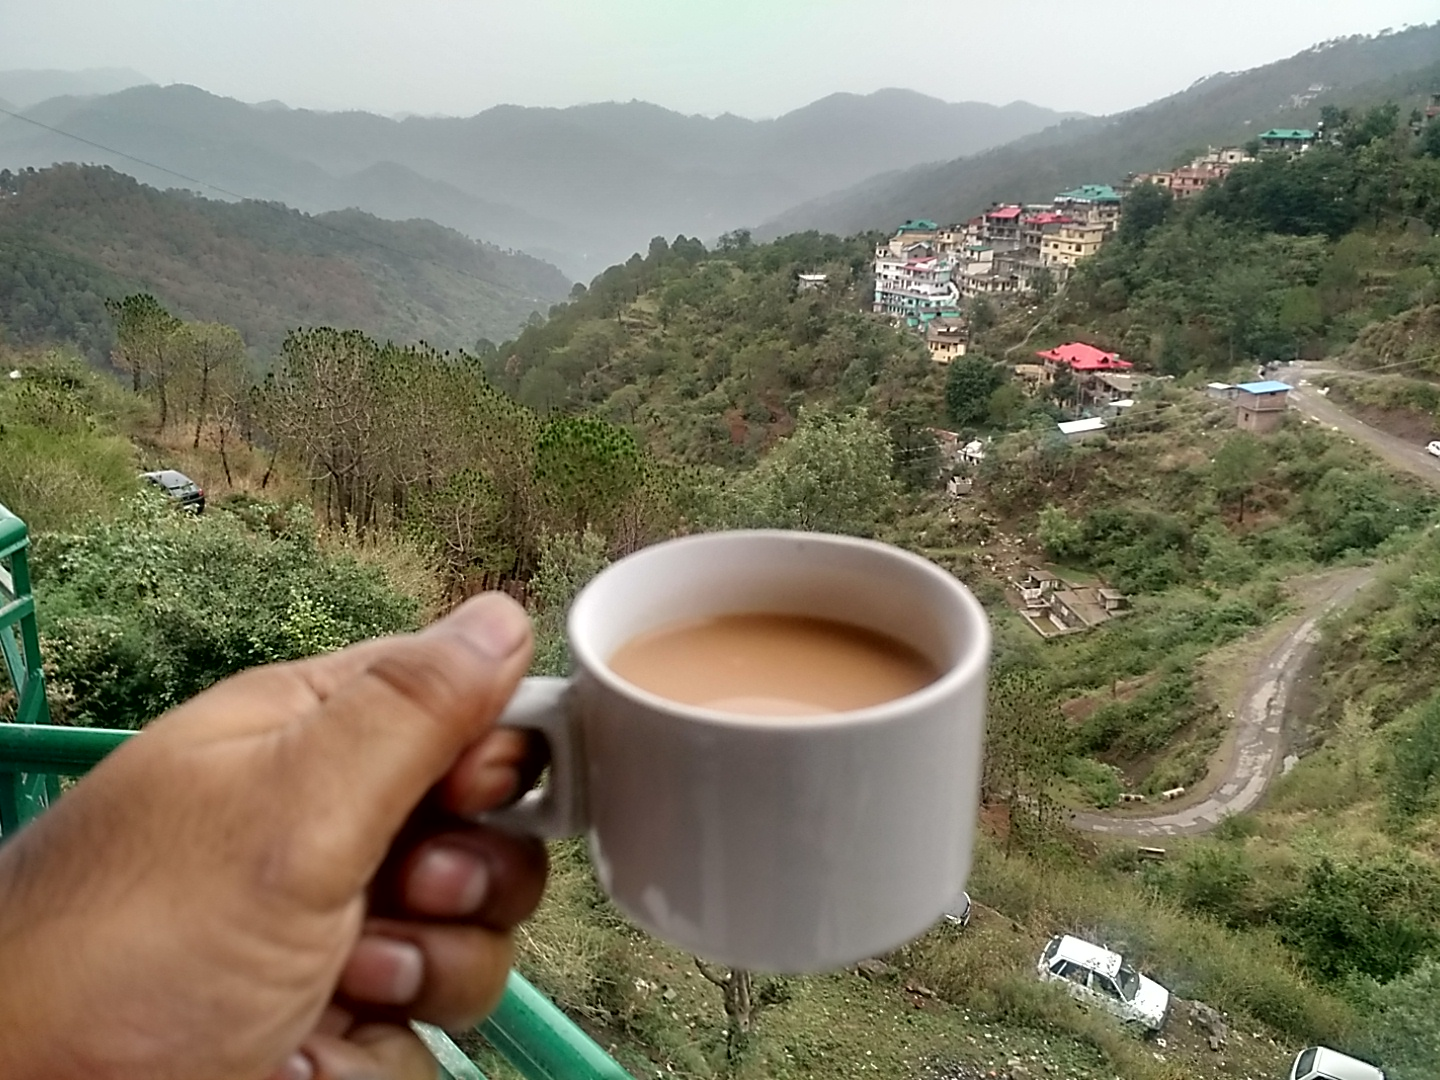 A toast to Kasauli's awesome morning